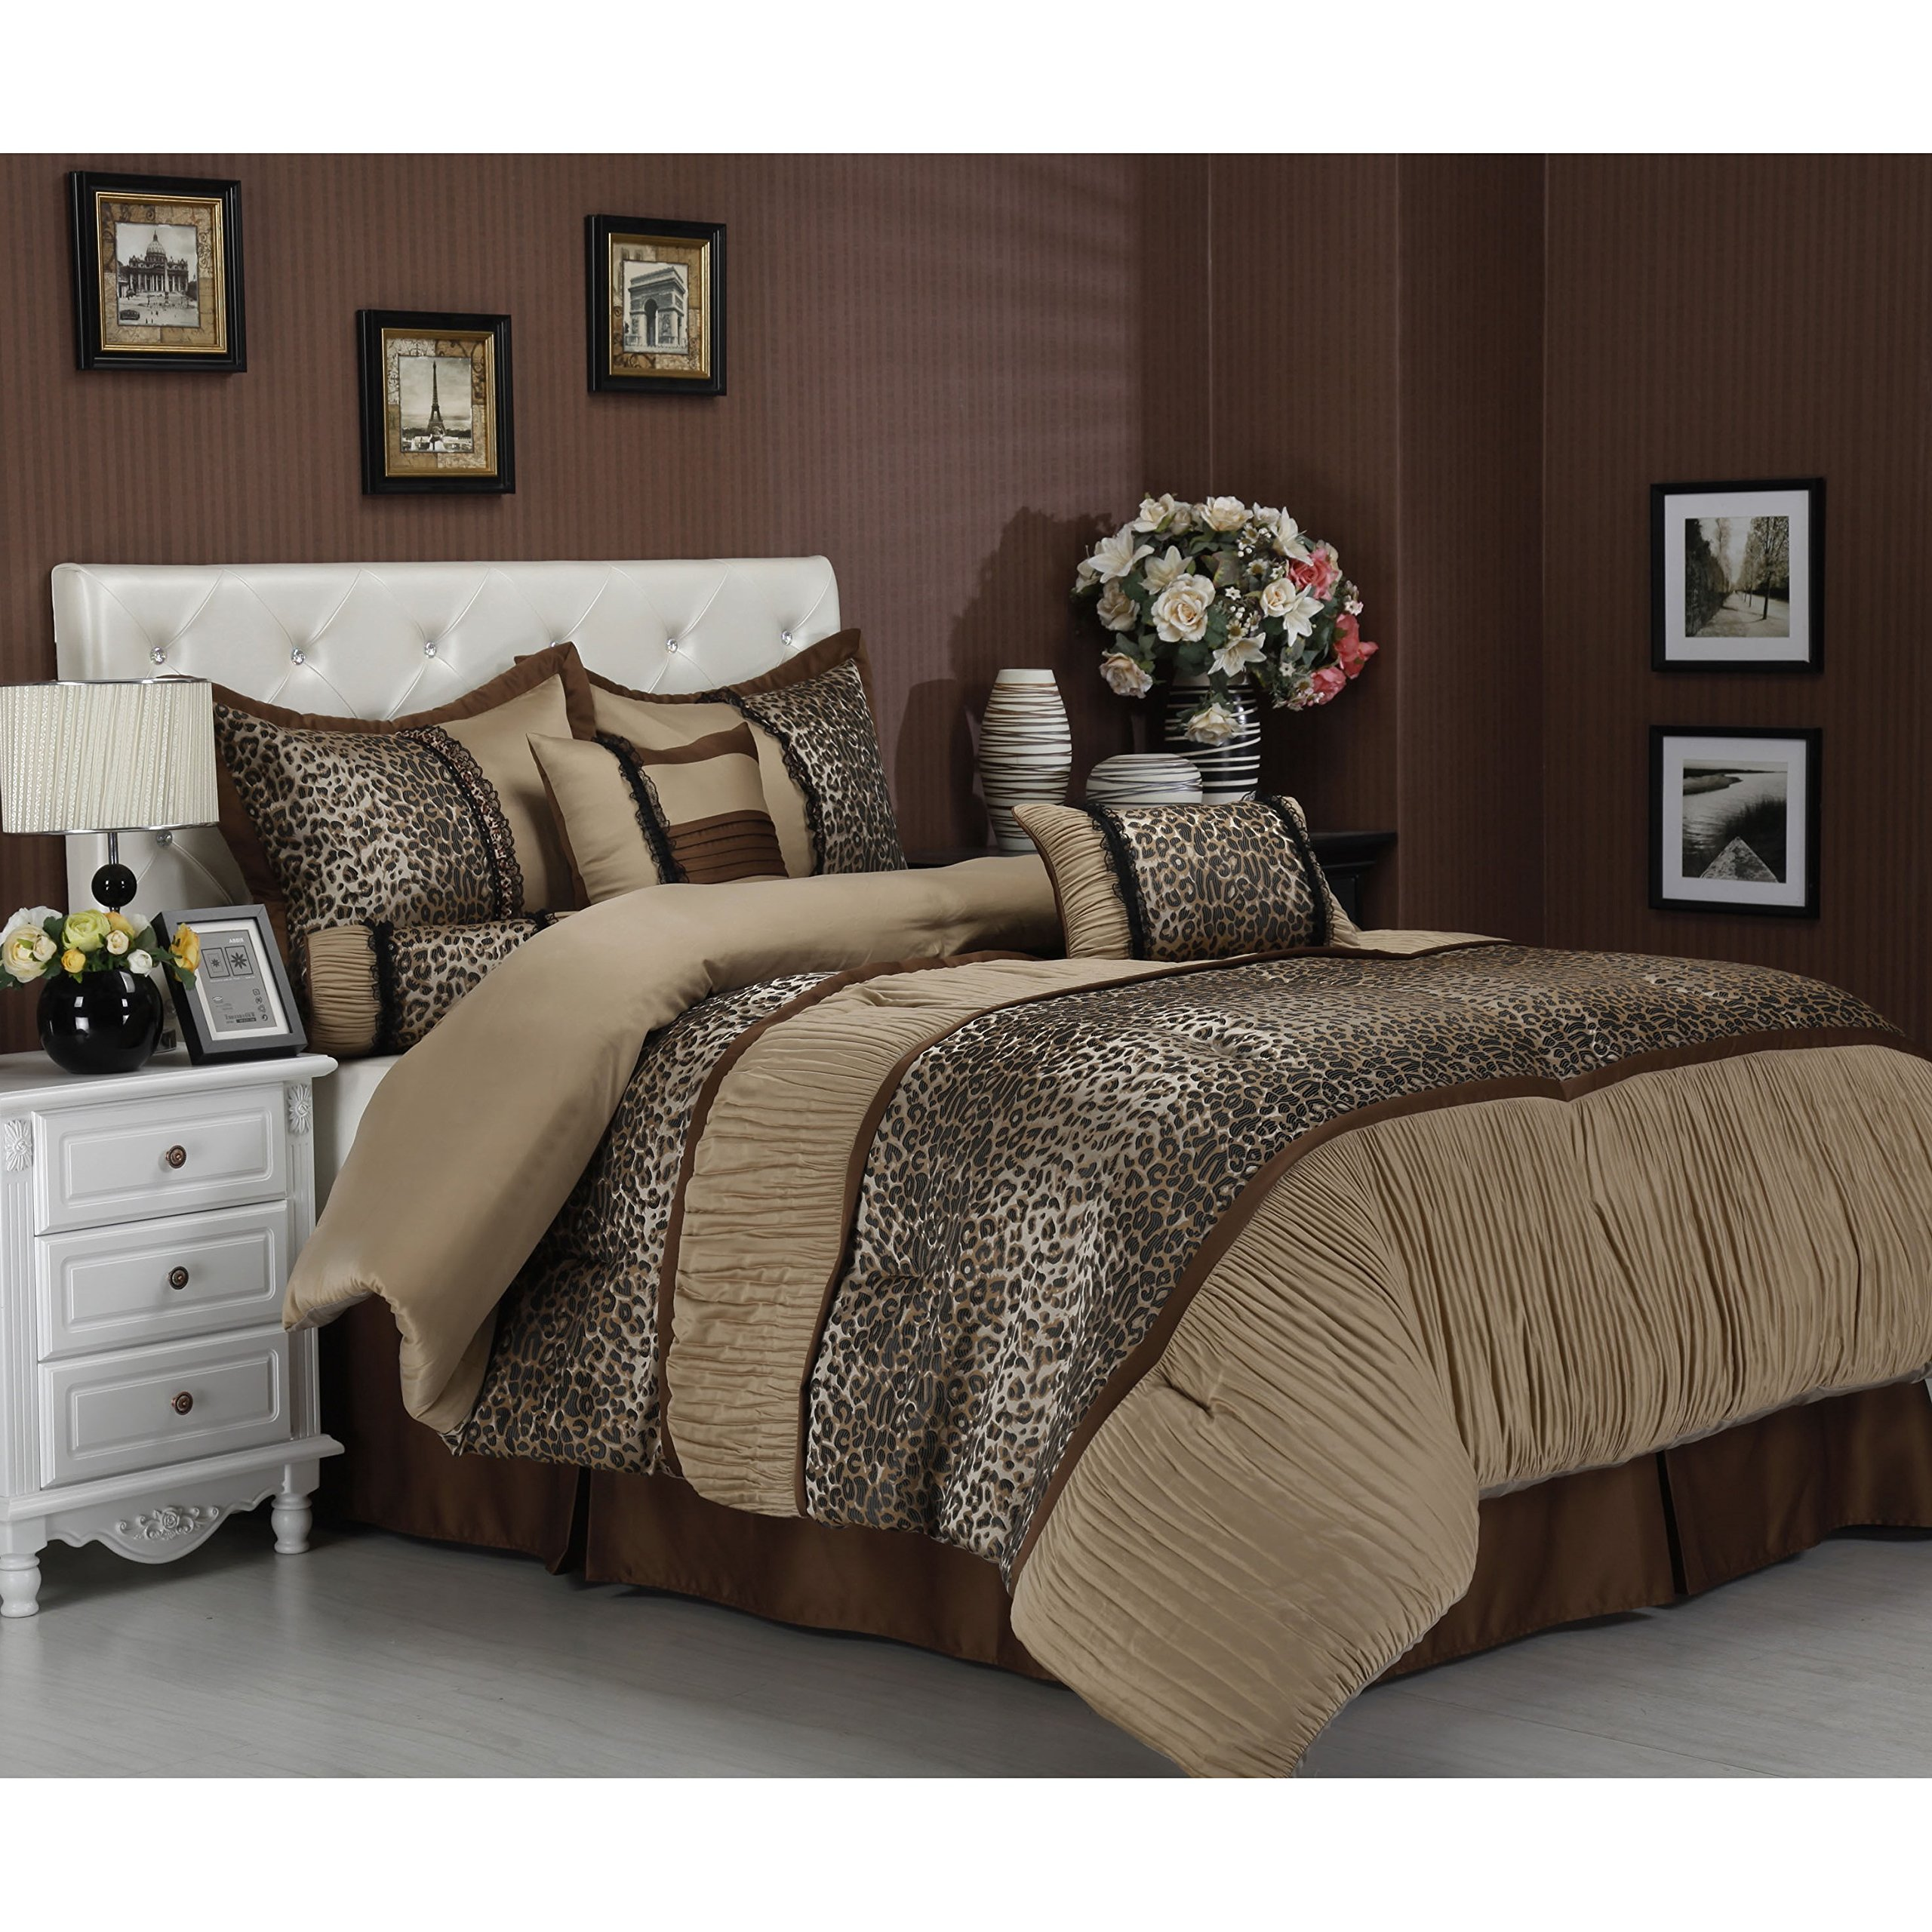 7 Piece Exotic Leopard Print Comforter Set Queen Size, Featuring Wild Printed Tiger Design Ruched Texture Premium Bedding, Luxury High End Modern Chic Cozy Bedroom, Brown, Black, Beige